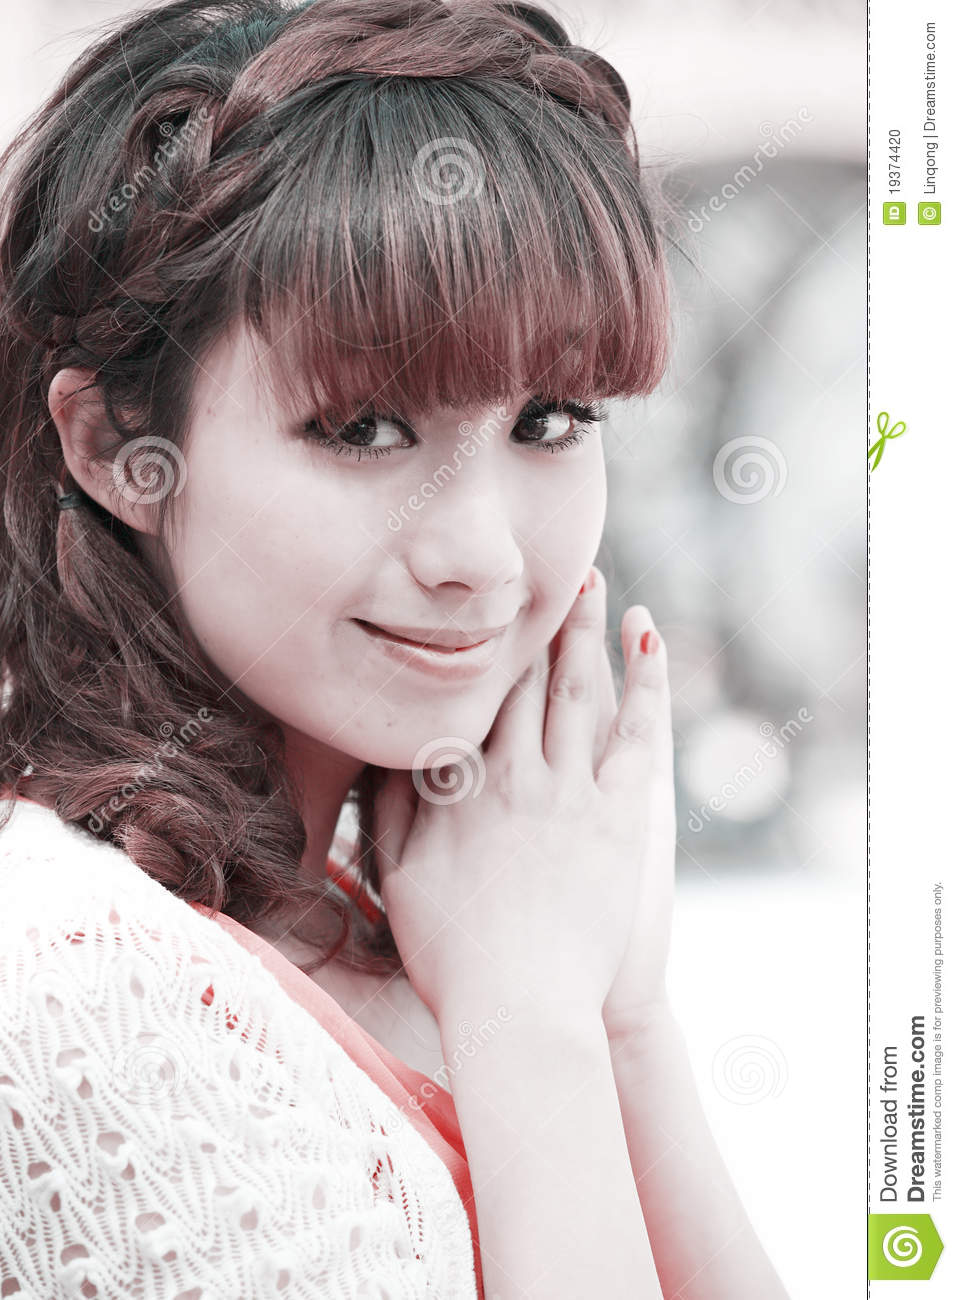 Www chinese girl com